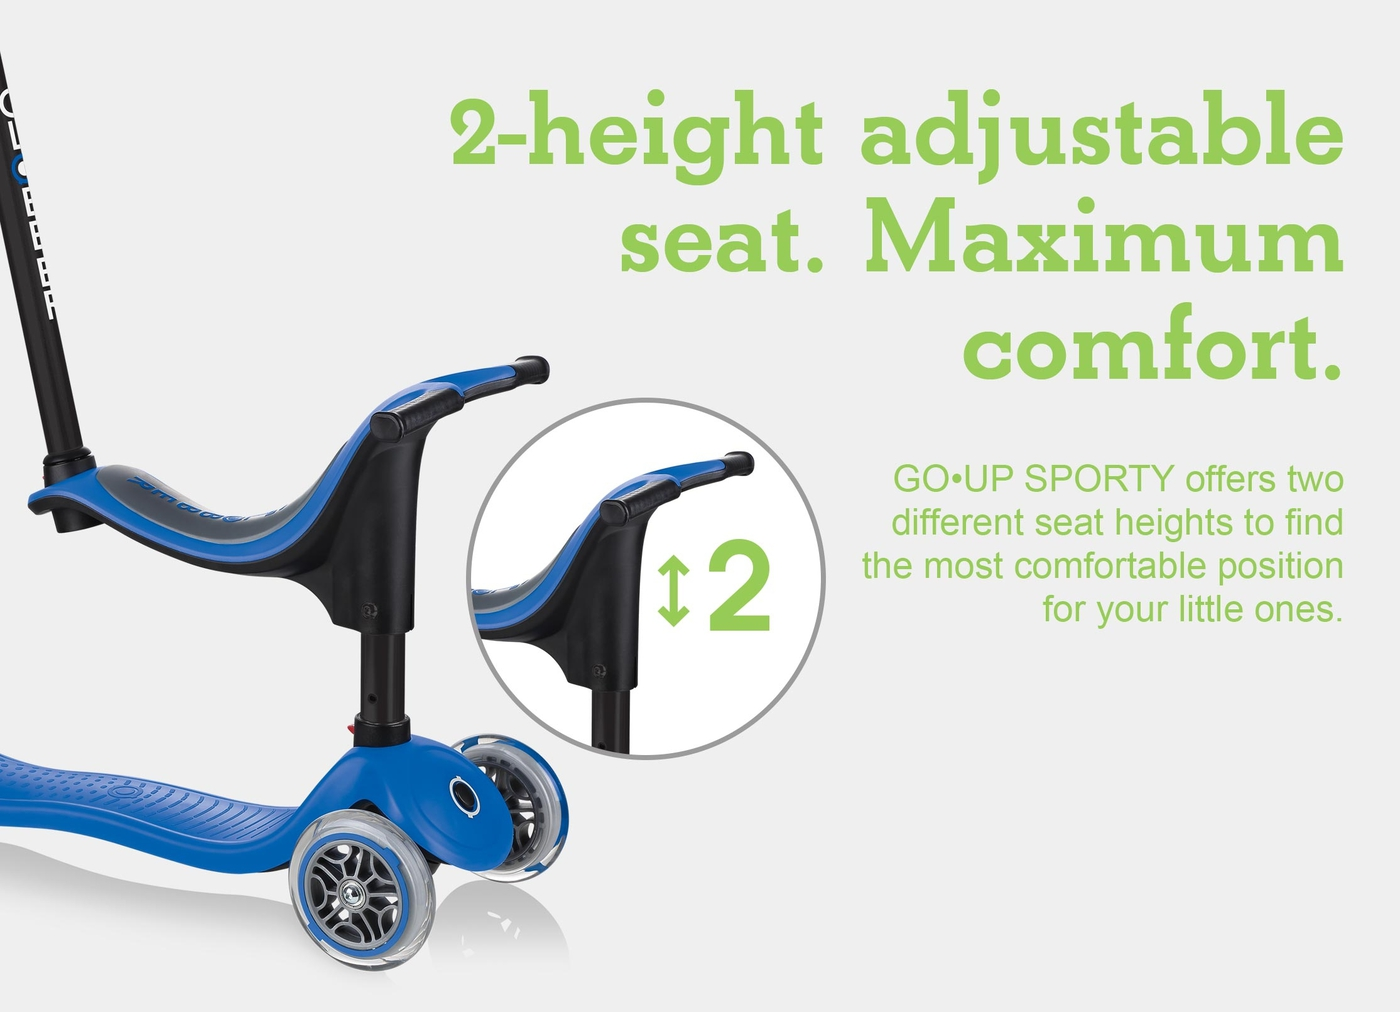 2-height adjustable seat. Maximum comfort.